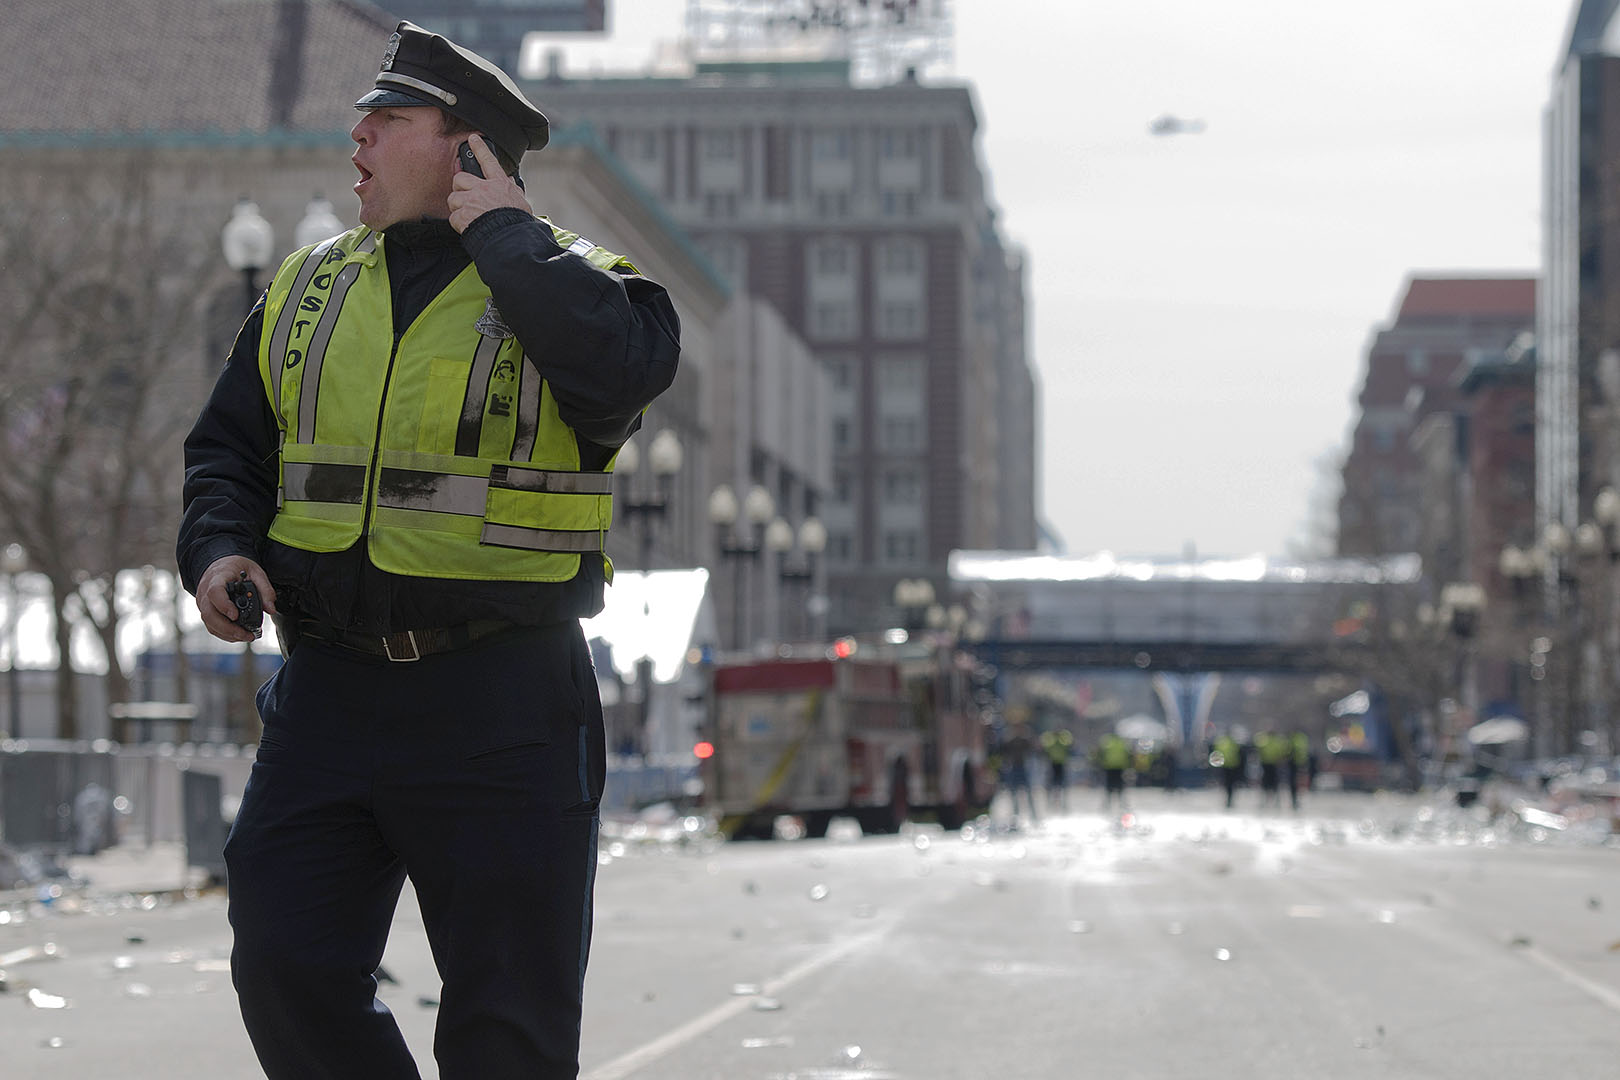 Marcus 82 offers firsthand accounts of Boston Marathon bombings and aftermath for Esquire